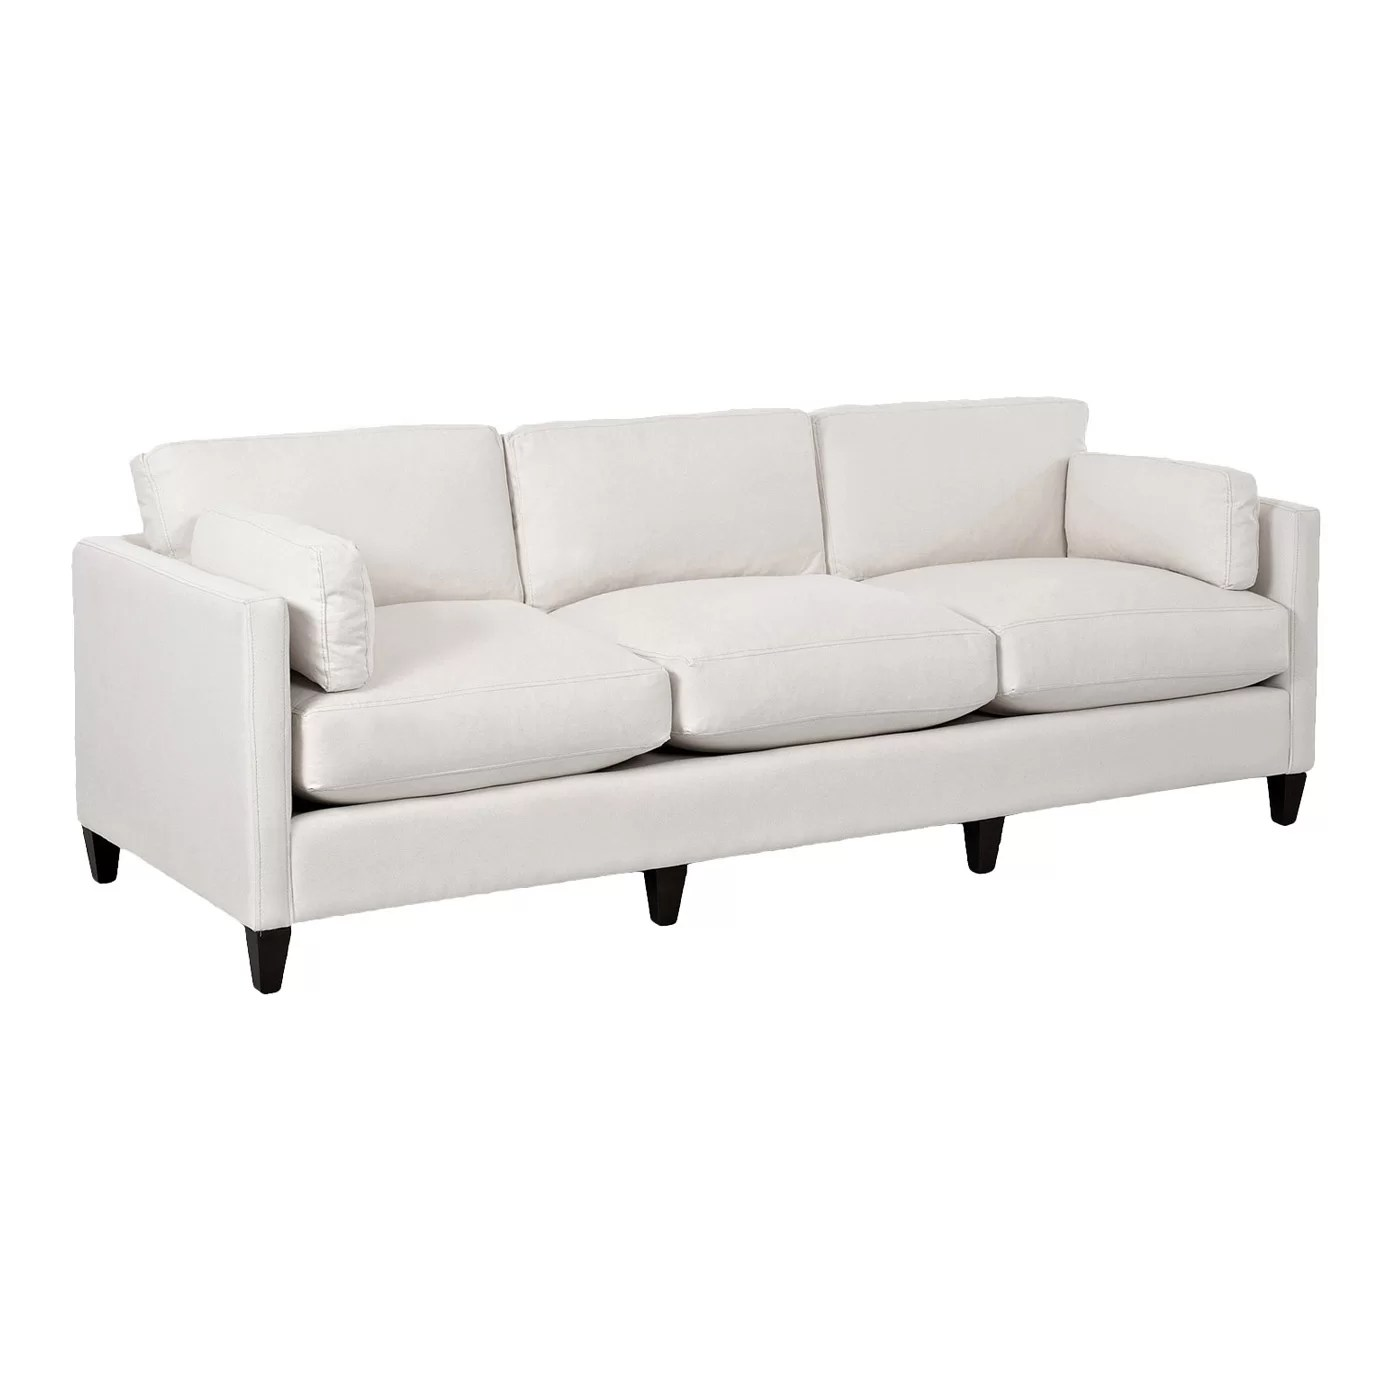 wayfair furniture sofa real leather click clack bed custom upholstery caroline and reviews